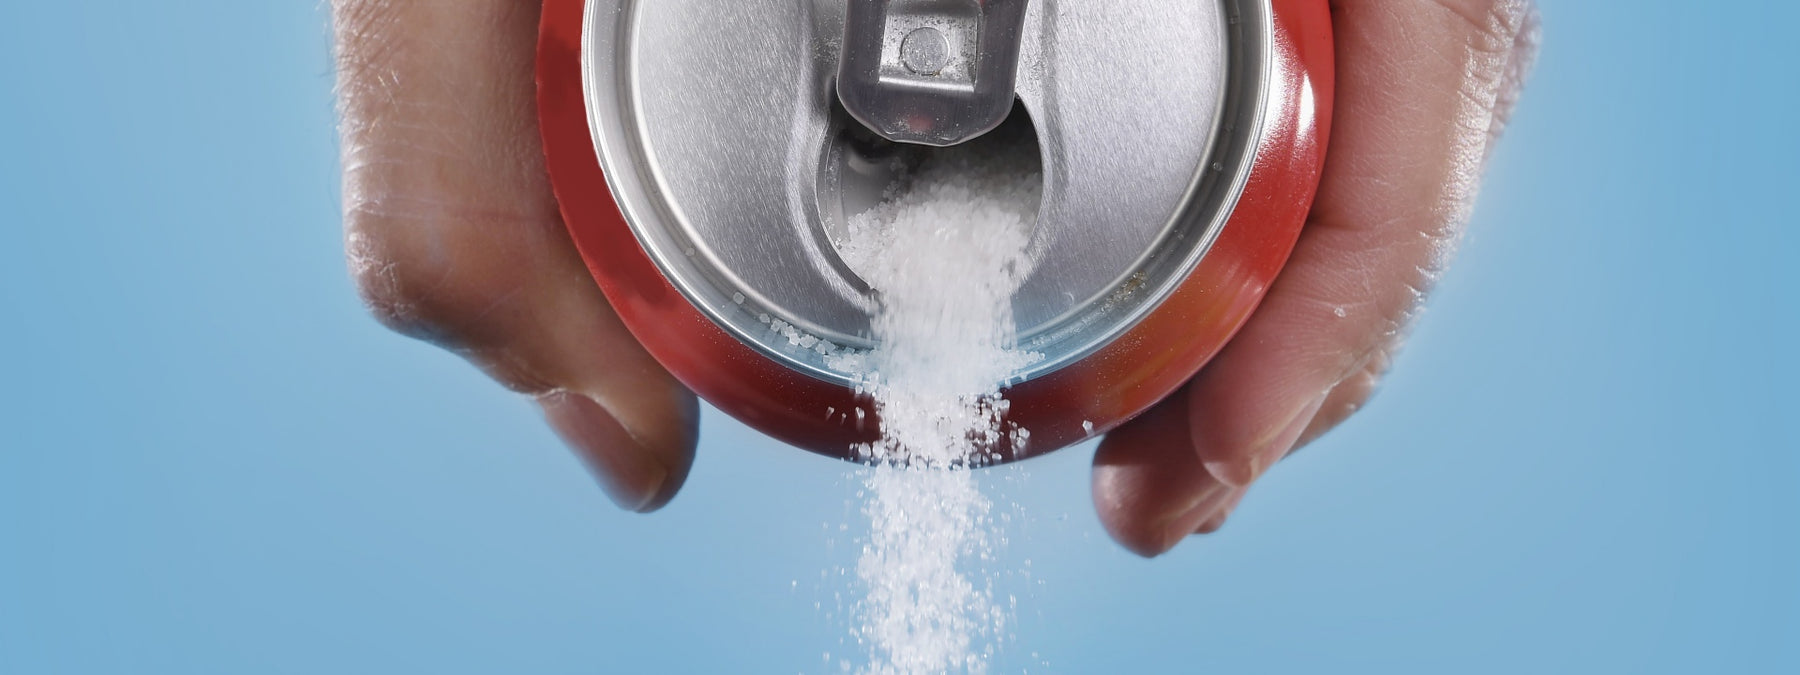 Sugar Industry Nutrition Scam - The Attack on Fat